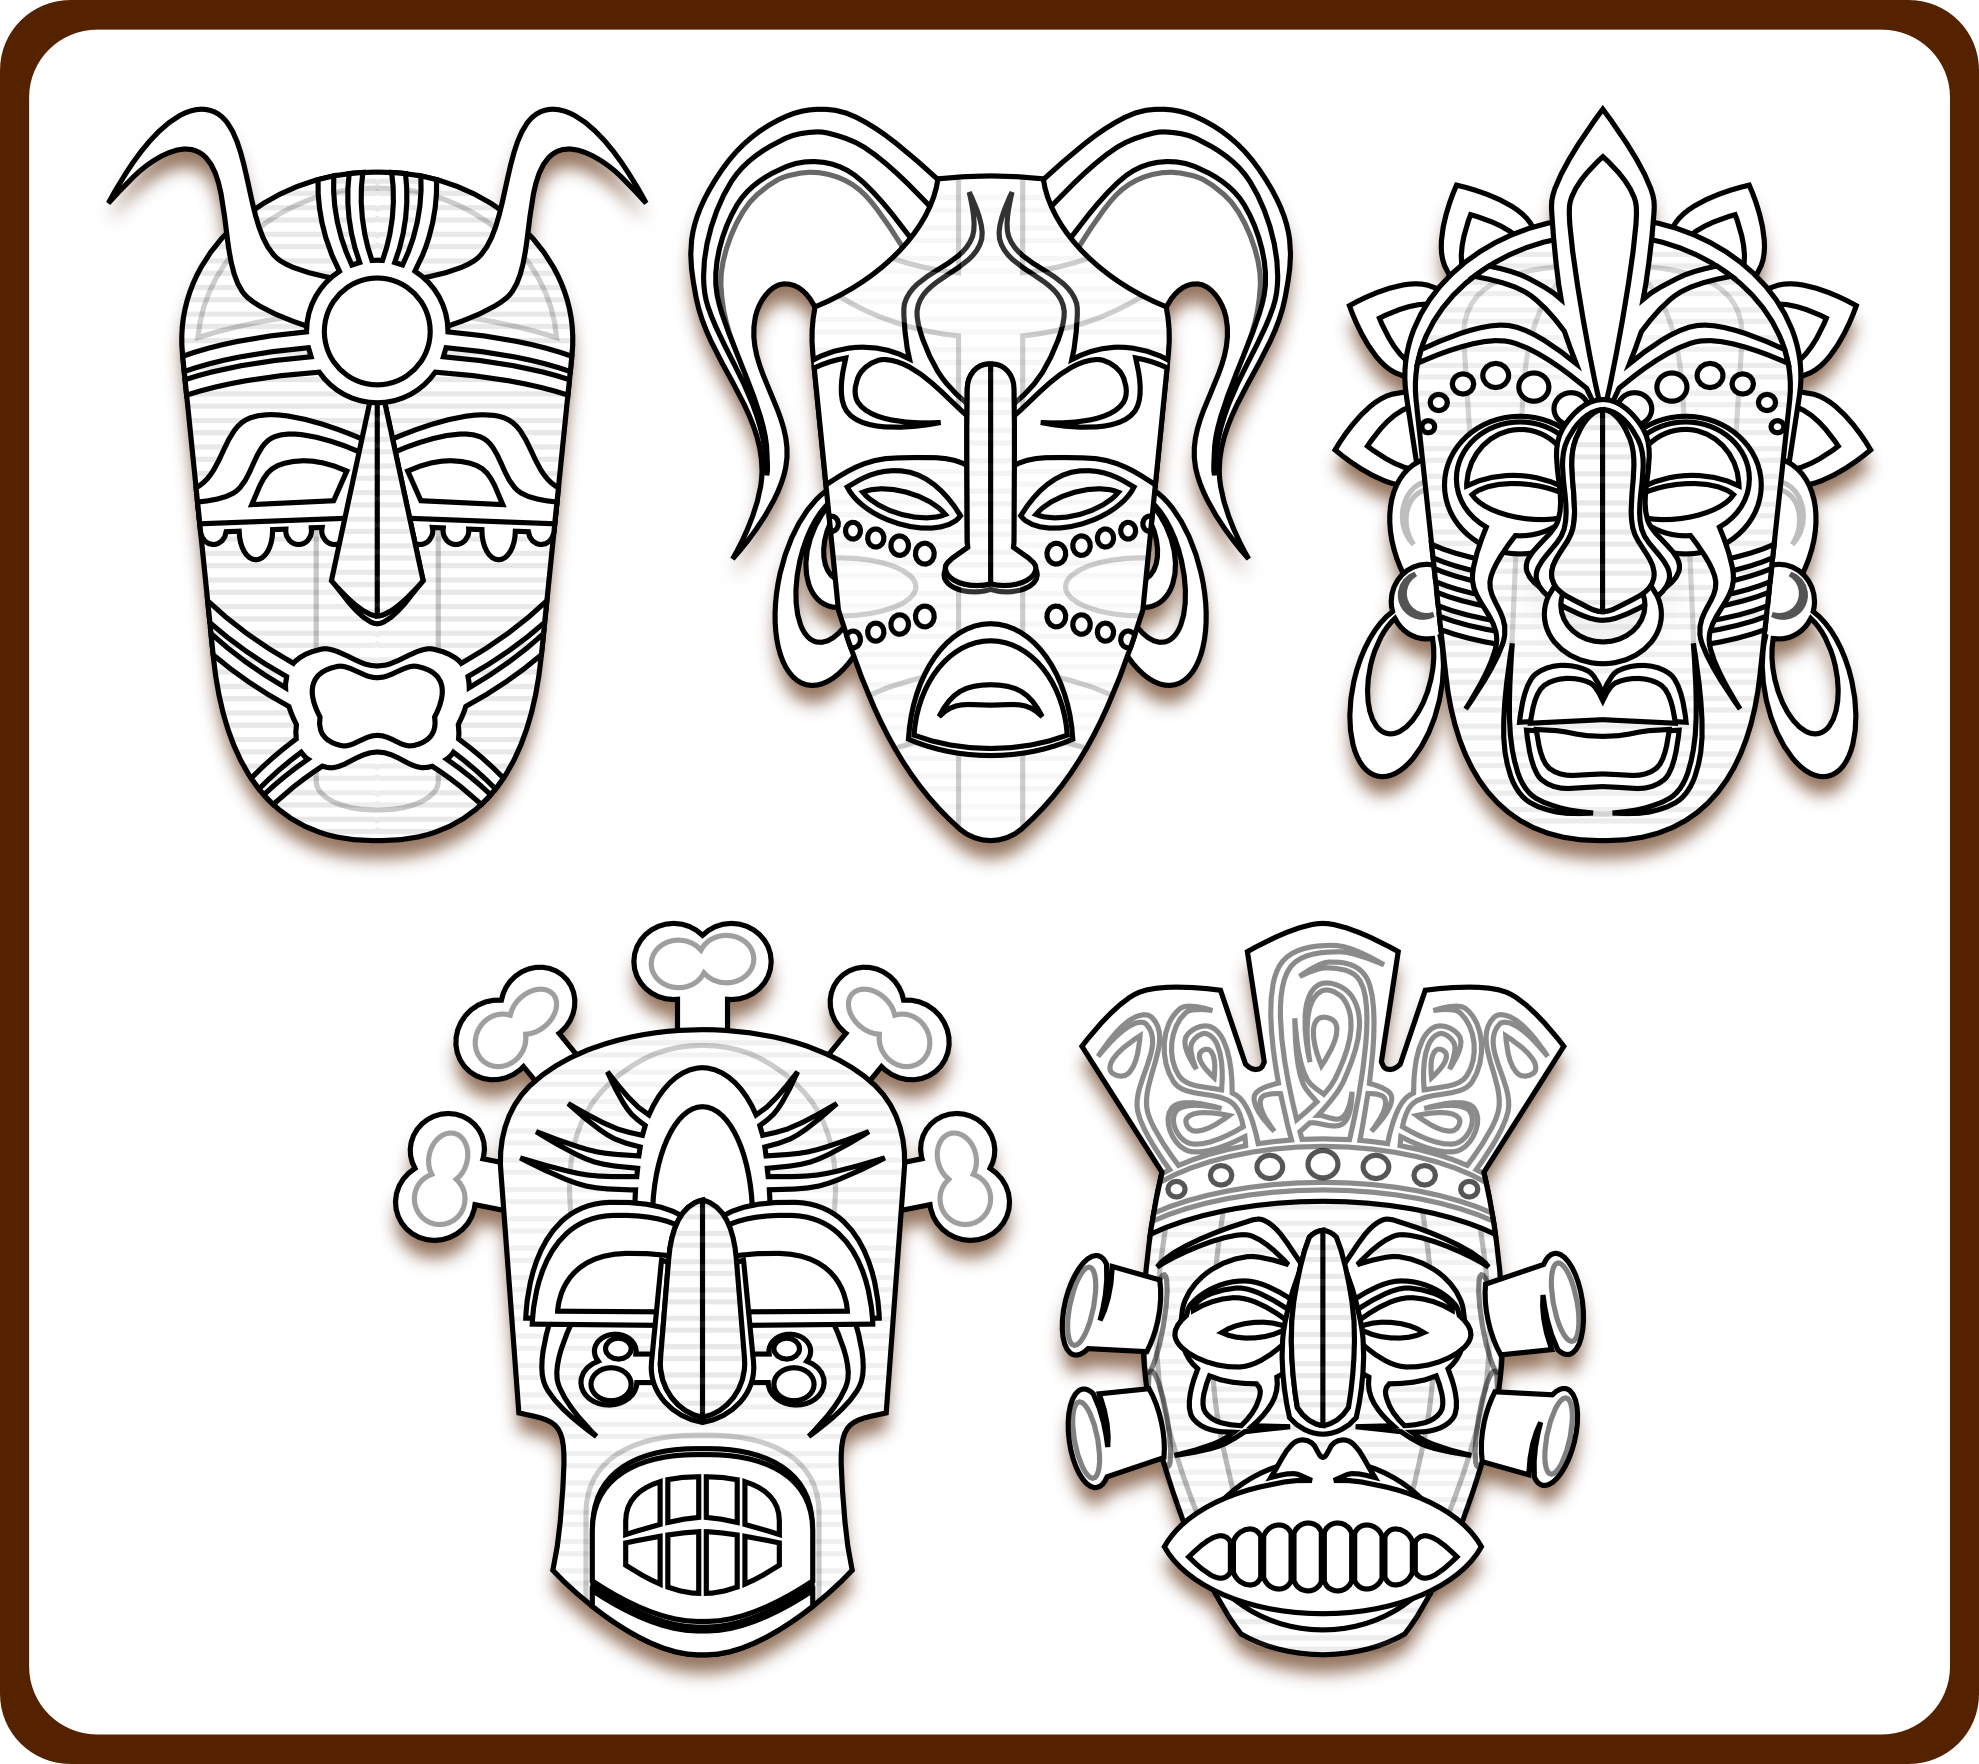 Tribal Mask Tribal Masks Art Coloring Book Colouring Sheet Page Black White Line Masks Art African Masks African Art